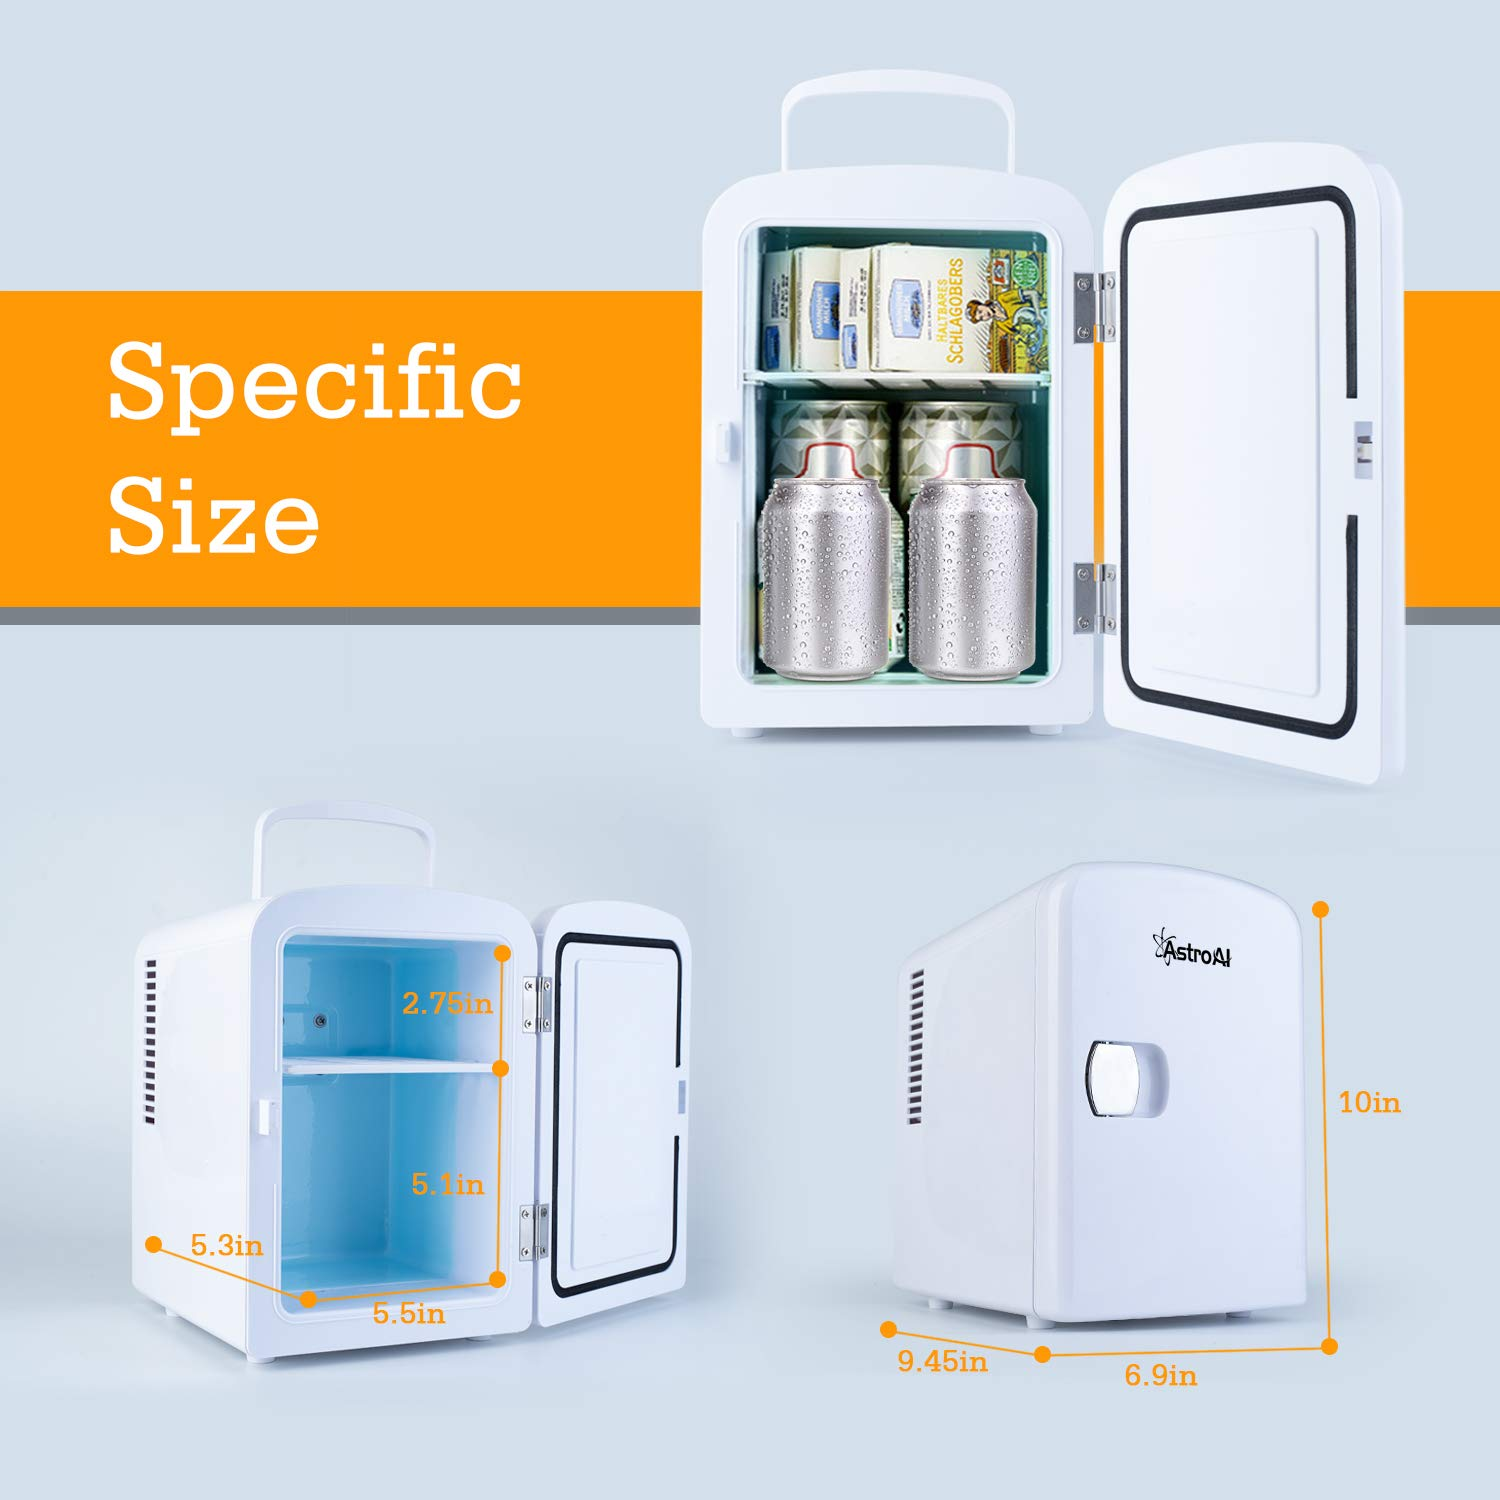 Astroai Mini Fridge Portable